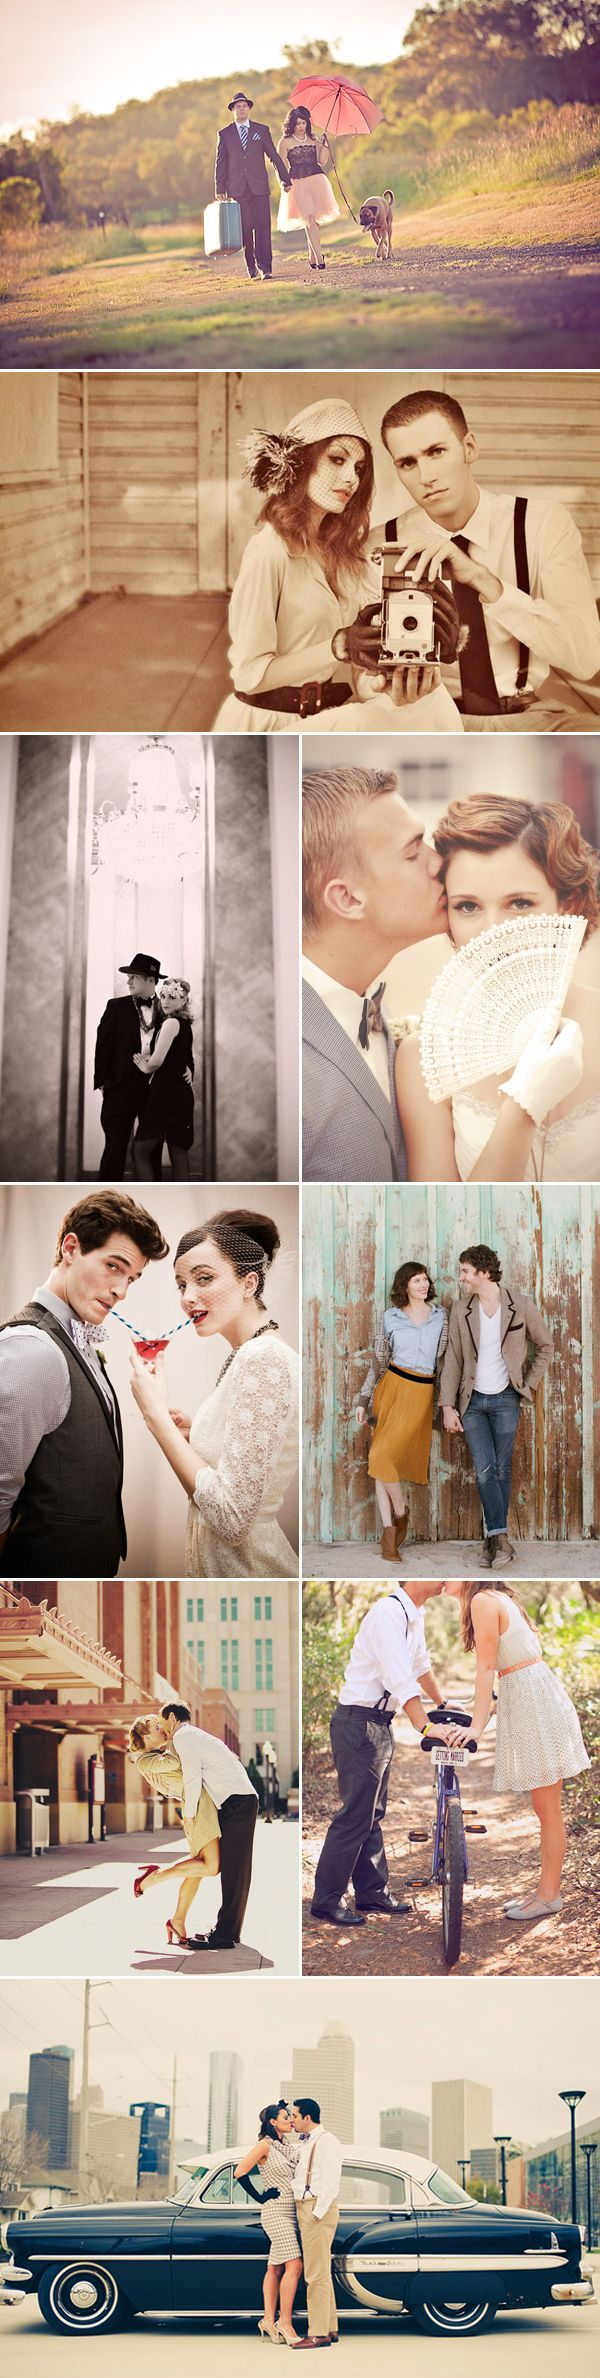 A vintage-inspired theme can add a fun and elegant twist to any wedding and reception. If you are considering to add a vintage touch to your wedding but don't know where to start, your engagement photo session is a good place to give it a try. A vintage theme allows couples to imbue the celebration …